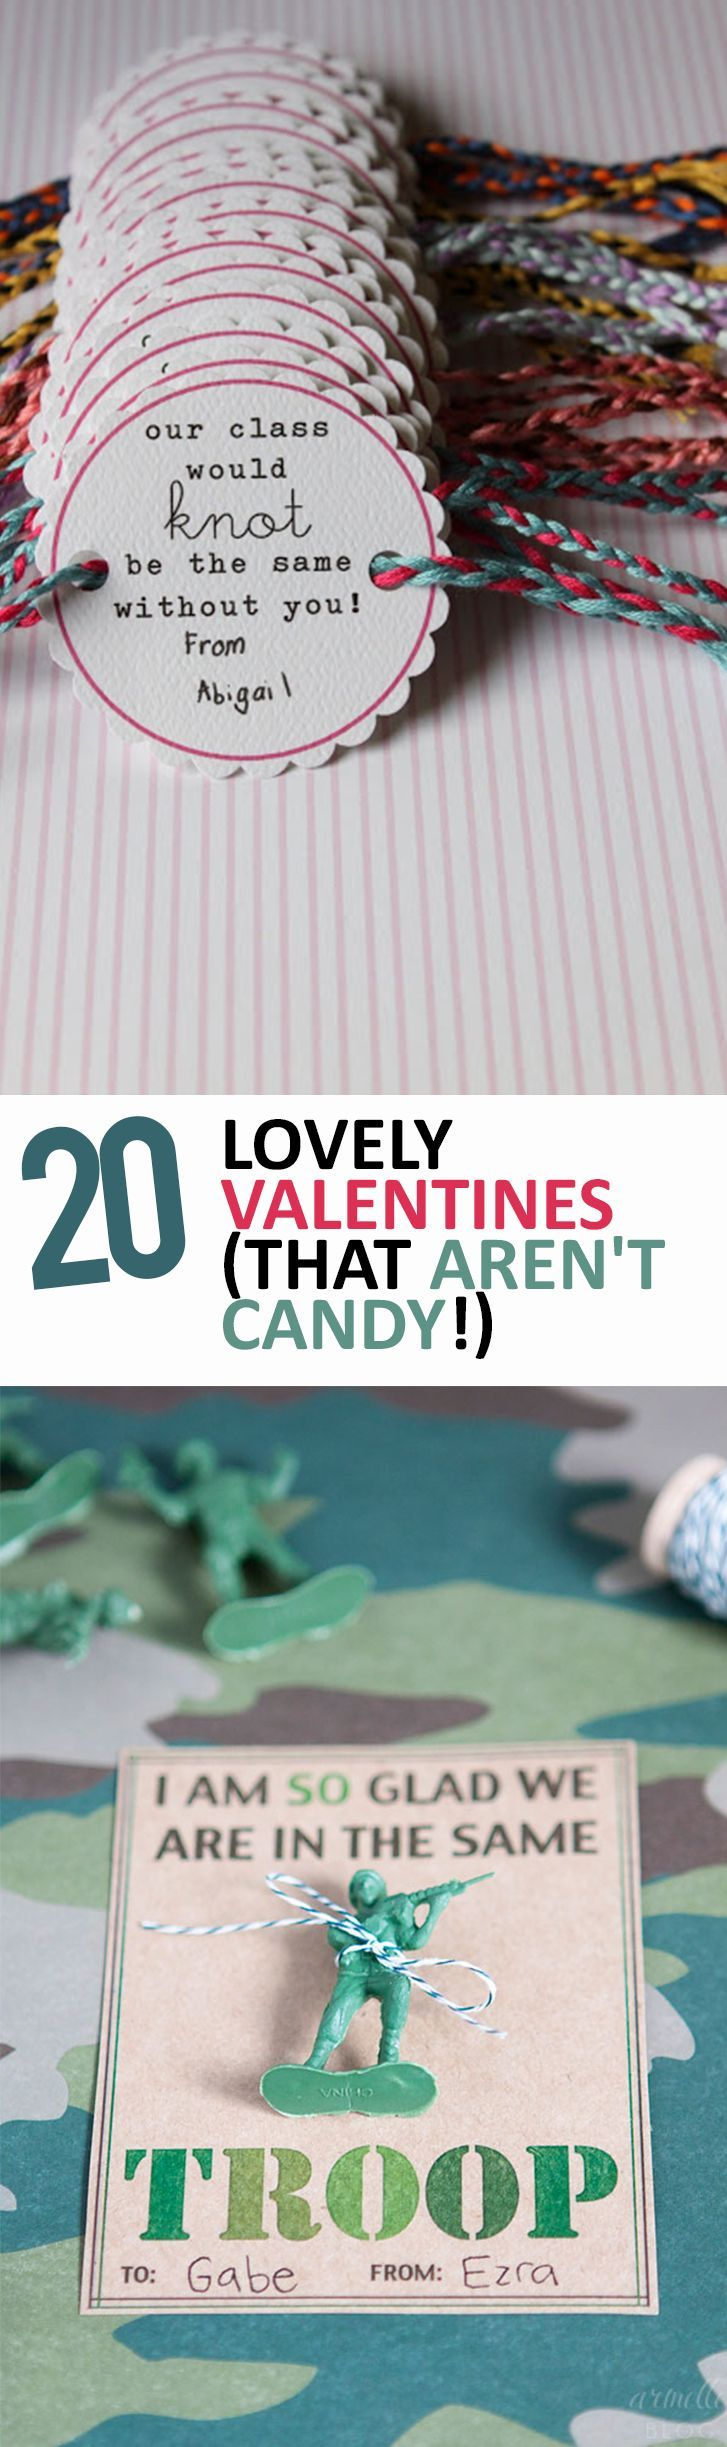 For Valentine's Day this year, why not sit down with your children and craft some really cool gifts and decorations that they can share with…